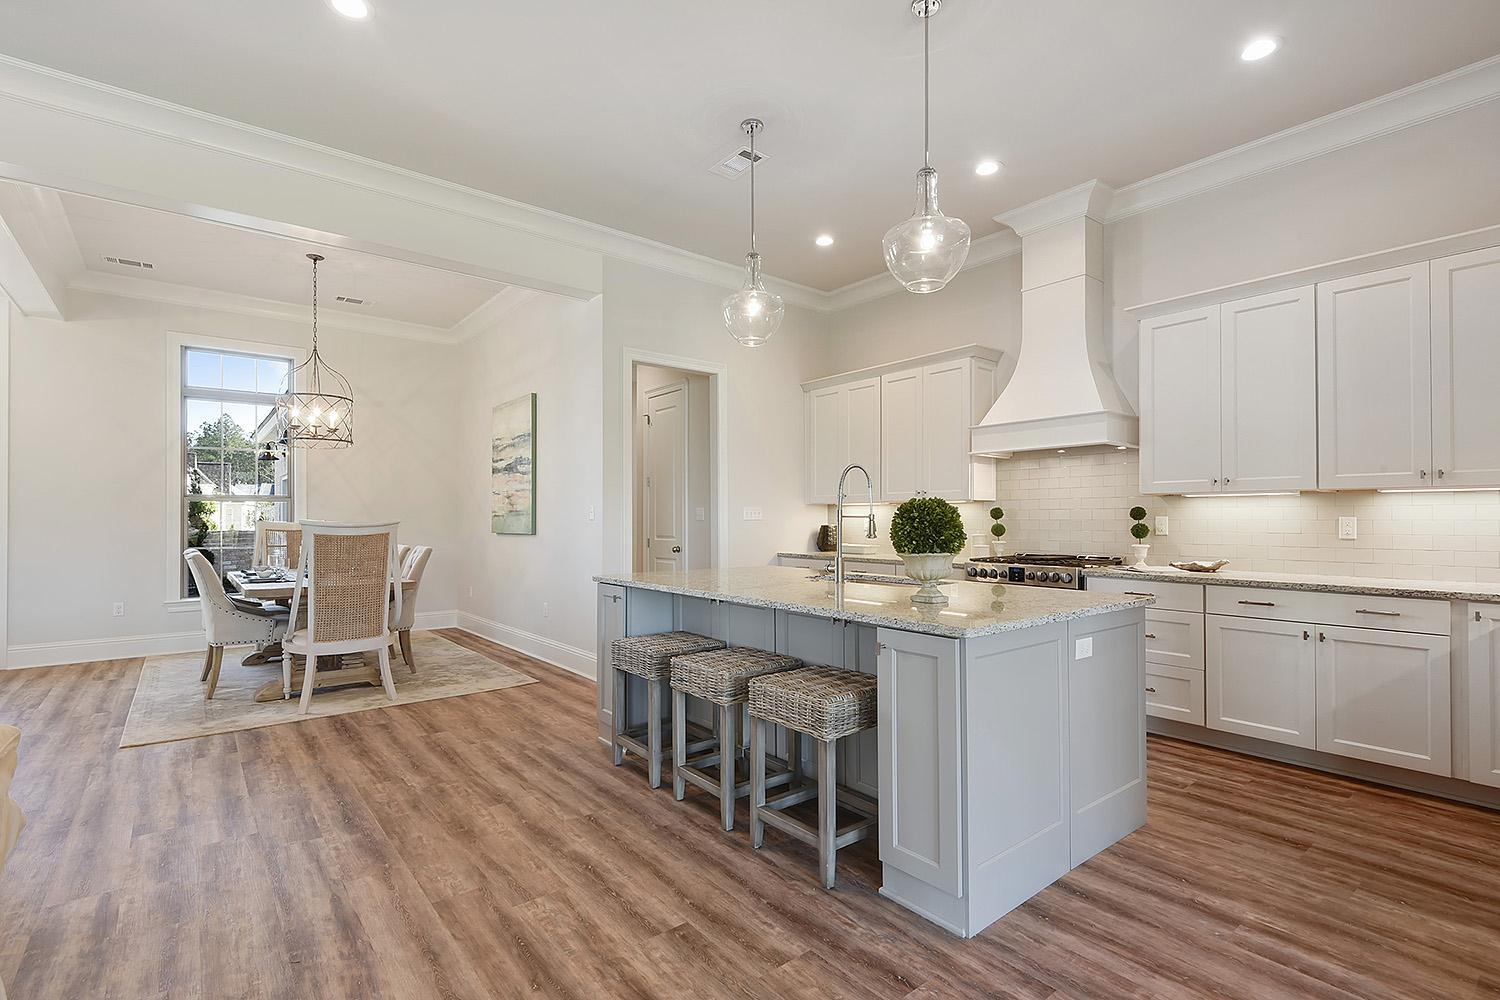 Kitchen featured in the Adelaide By Highland Homes in New Orleans, LA